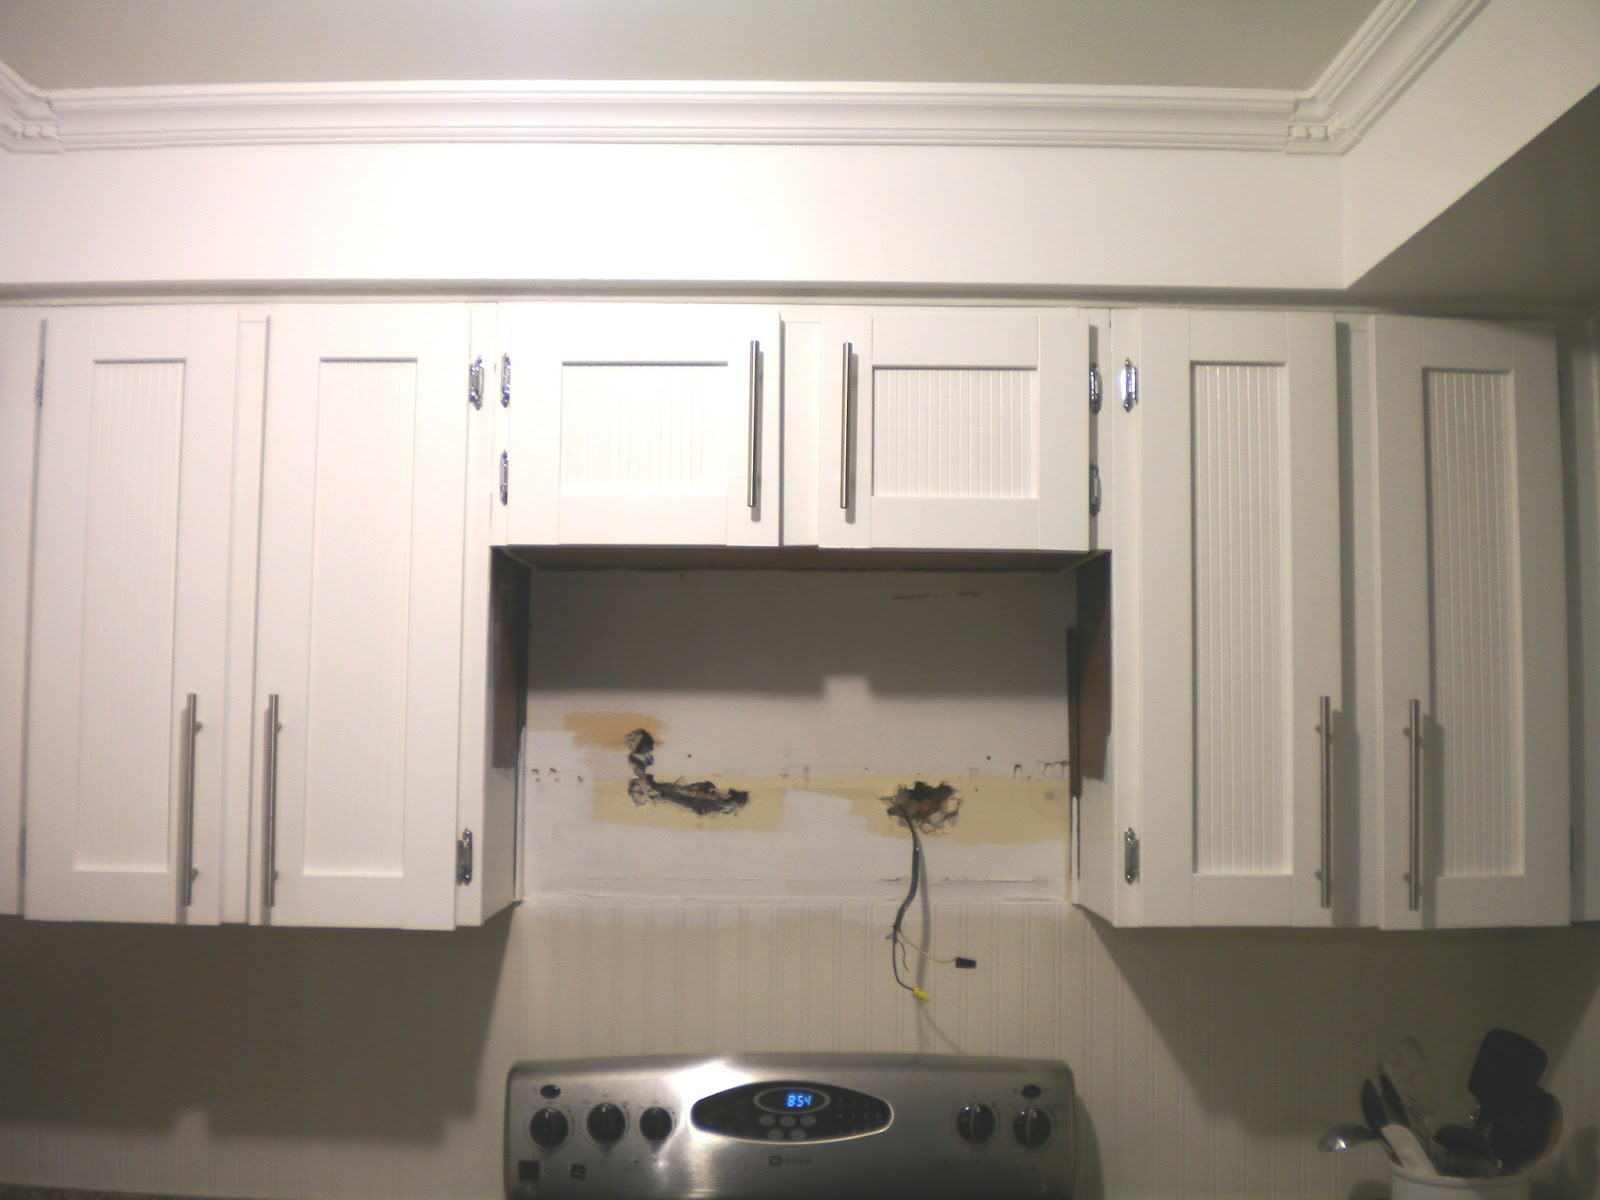 Kitchen Cabinet For Microwave Broadview Heights Kitchen Progress Retrofit A Cabinet For A Microwave